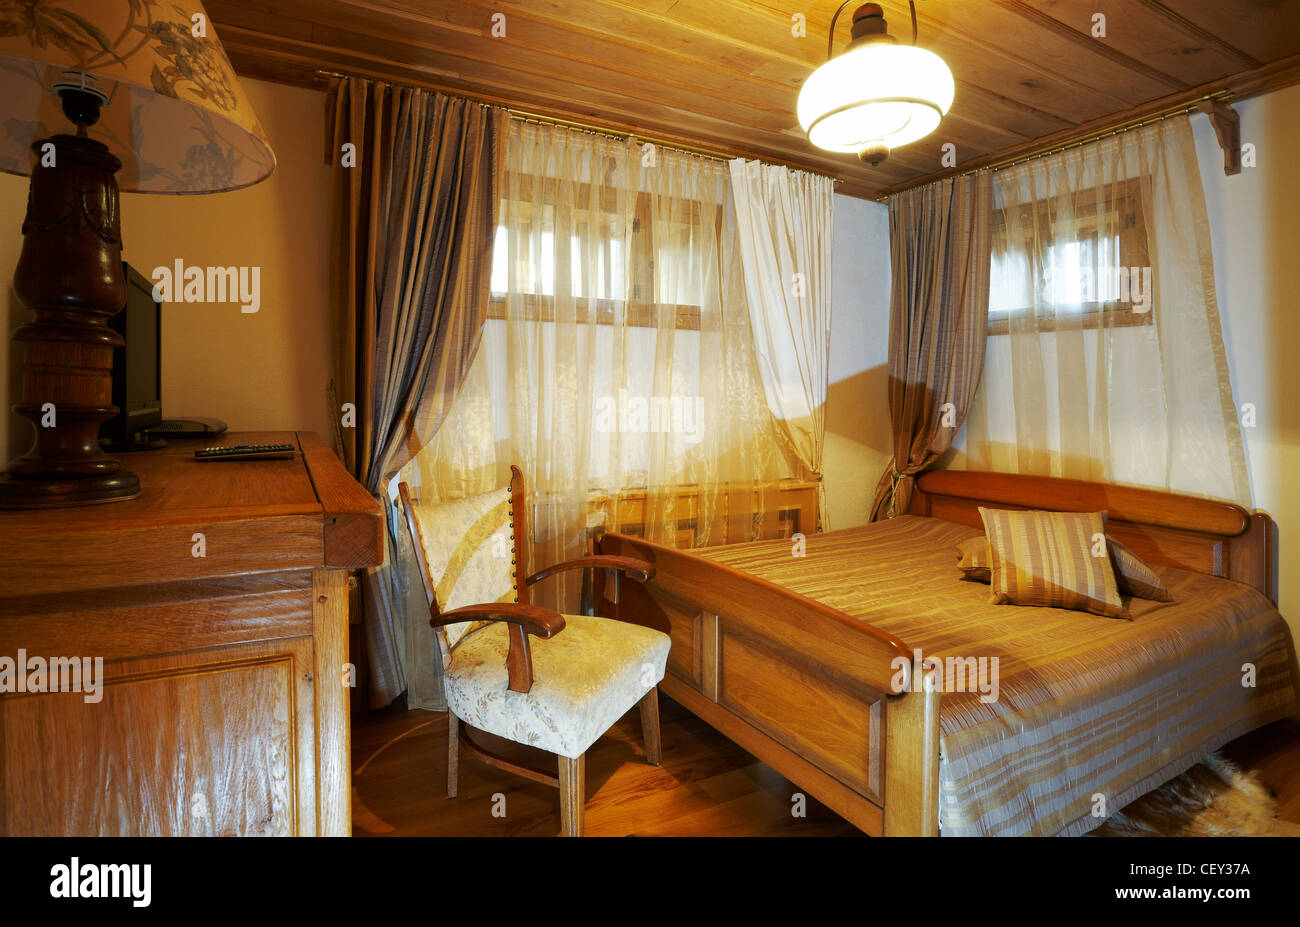 hotel style bedroom furniture. Bedroom With Old Style Wooden Furniture, Hotel Room Interior Furniture